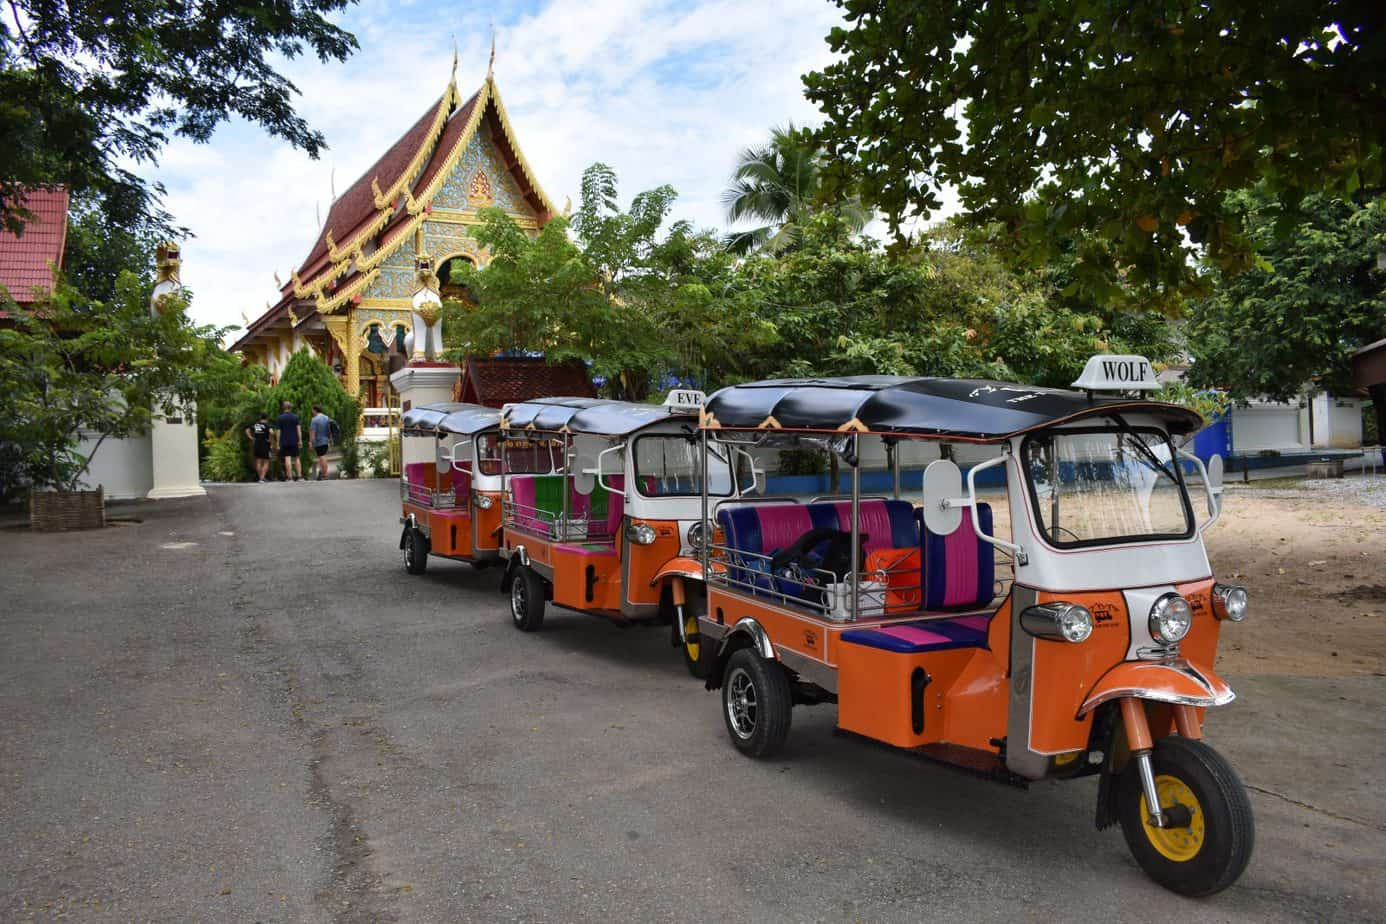 THE-TUK-TUK-CLUB-7.jpg